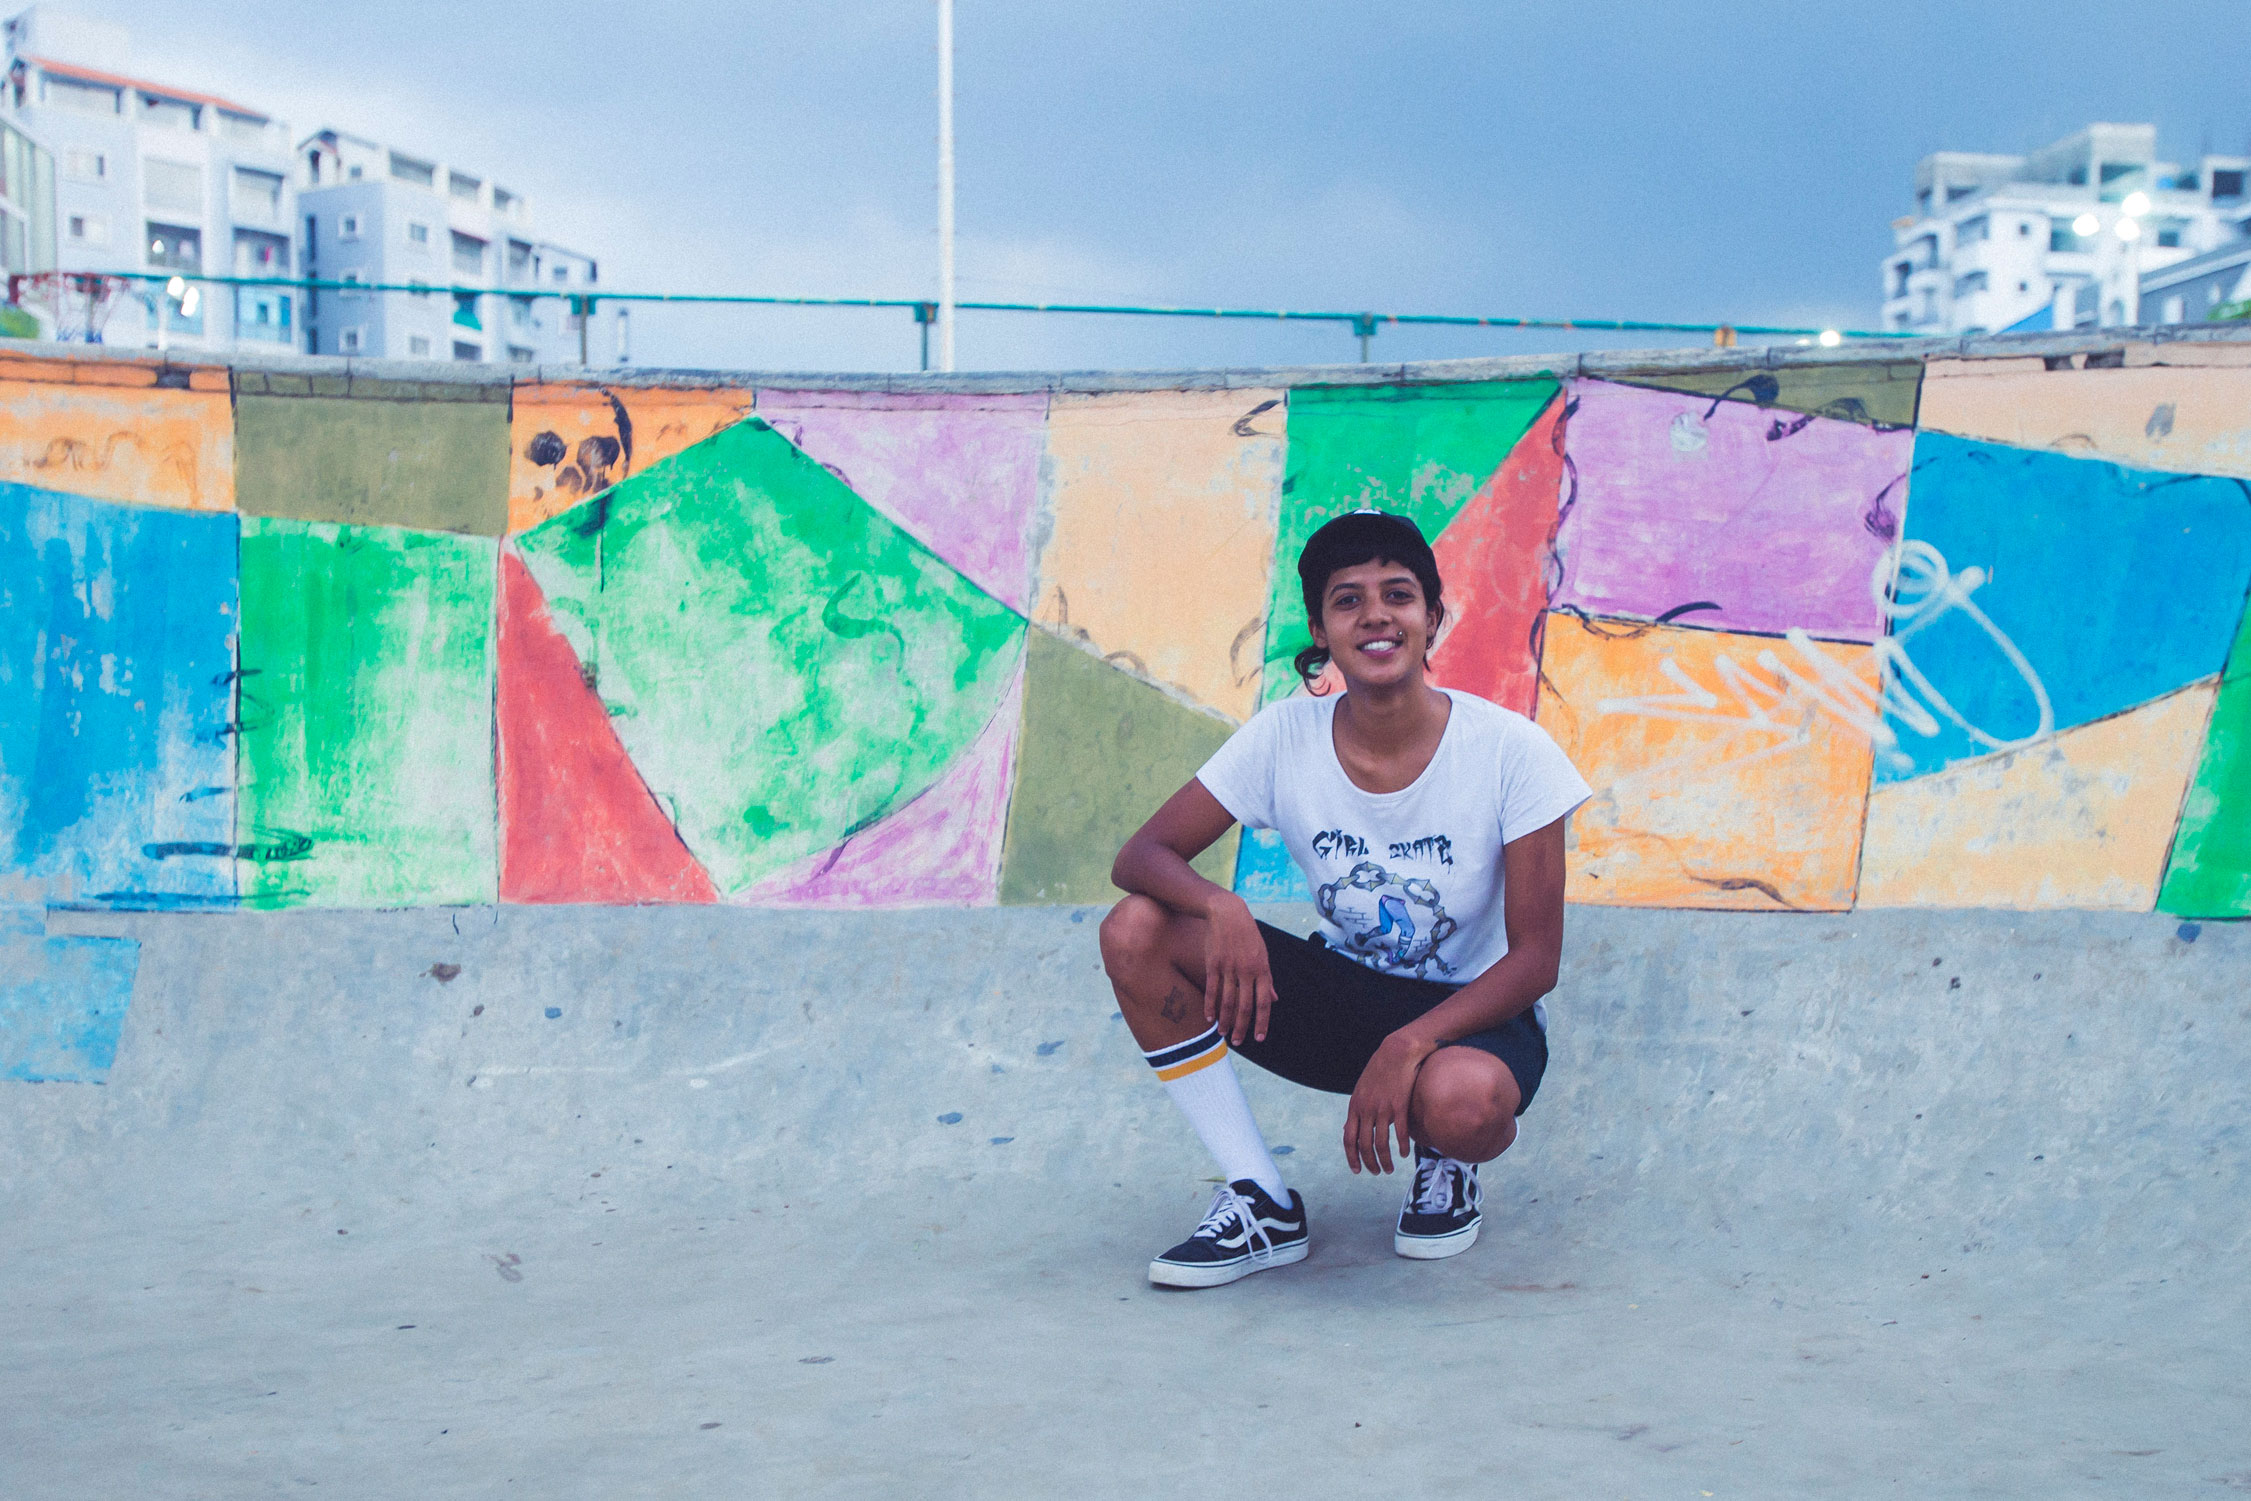 IT'S A 'WHEELY' GOOD TIME TO BE A SKATER GIRL, SAYS ATITA VERGHESE